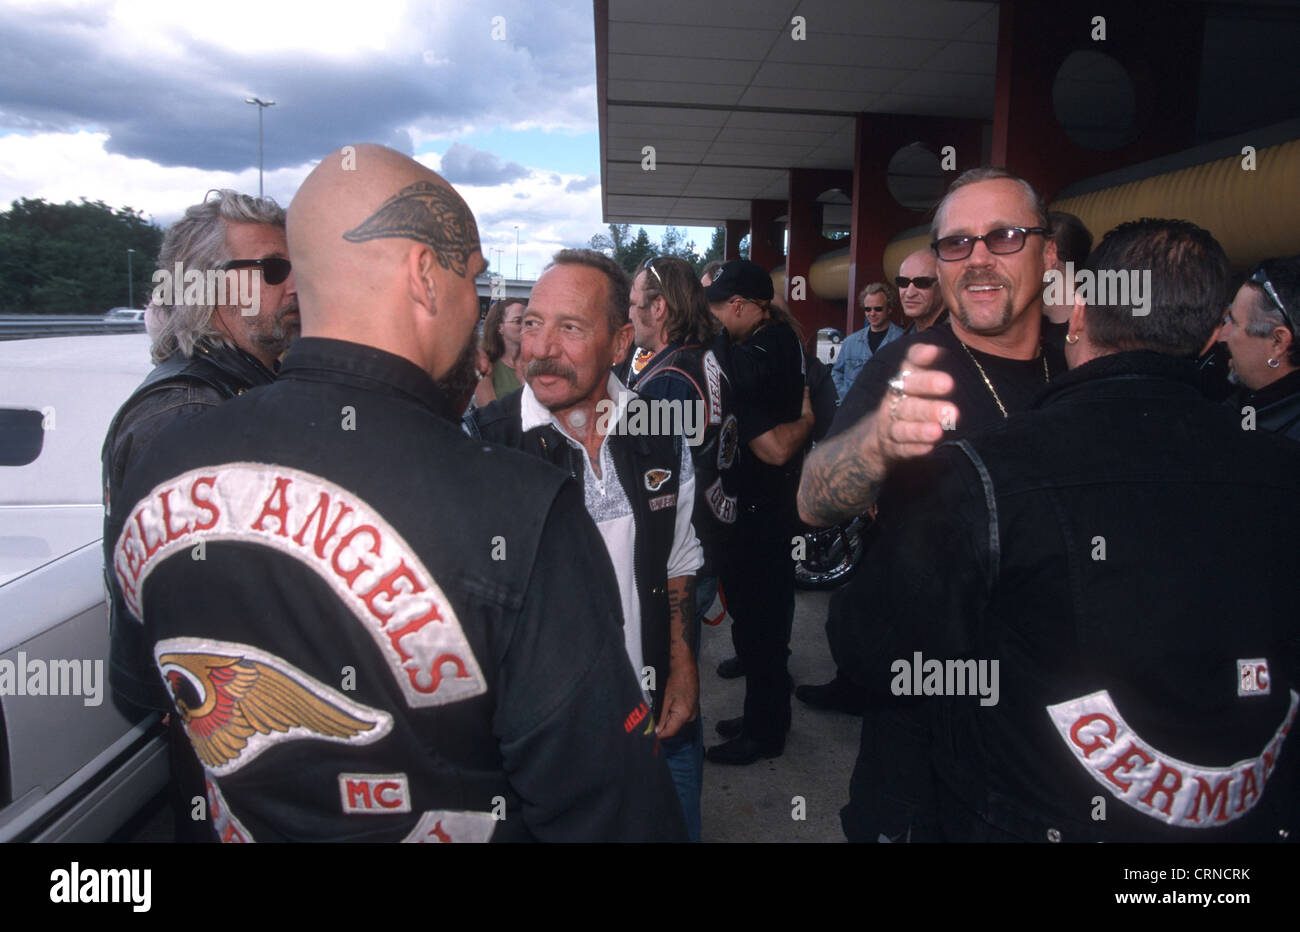 Hells Angels Berlin News